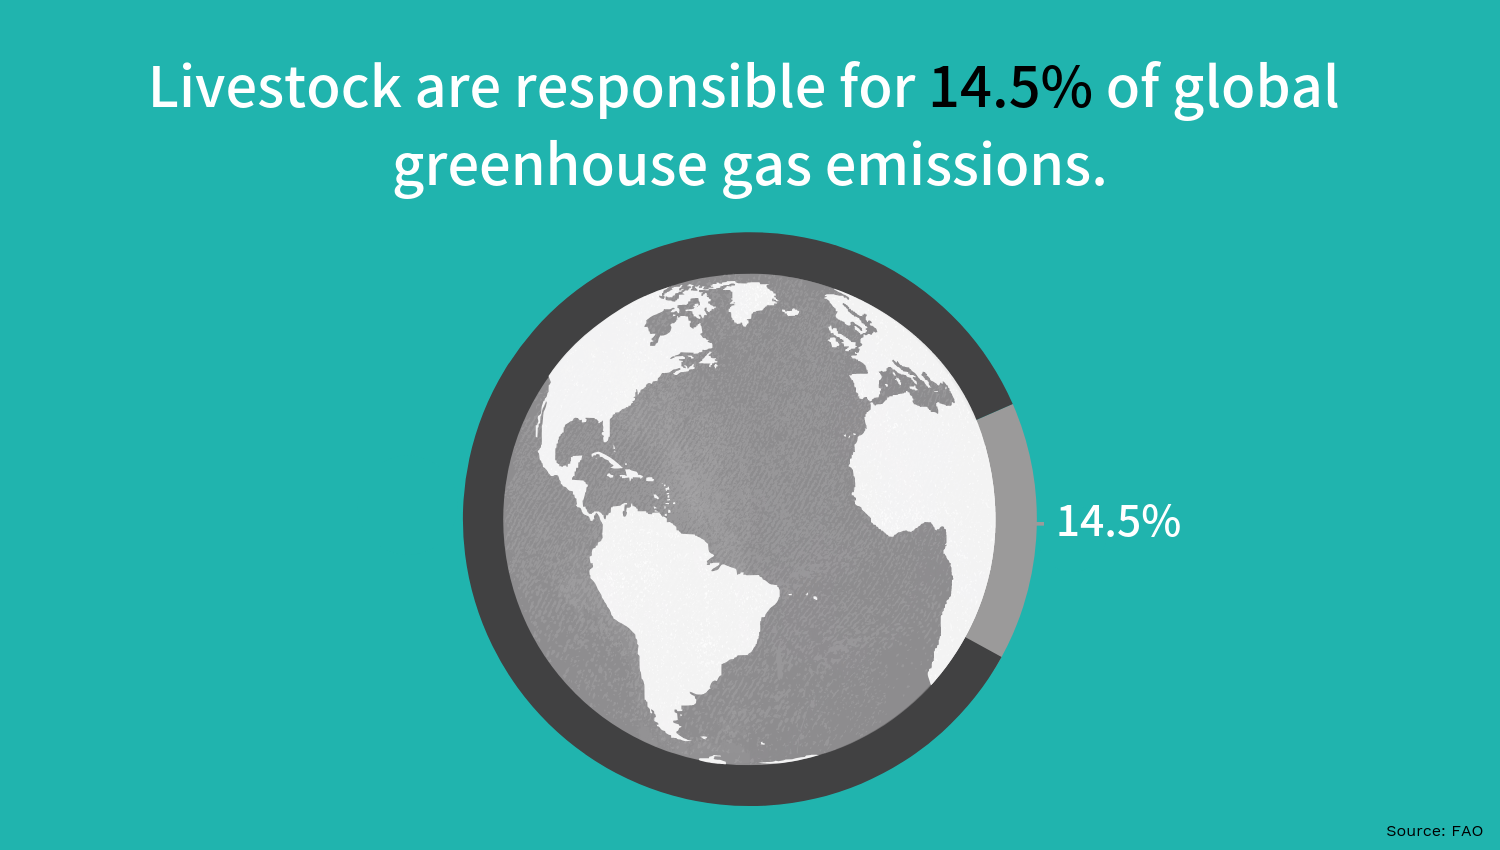 Livestock's contribution to greenhouse gases